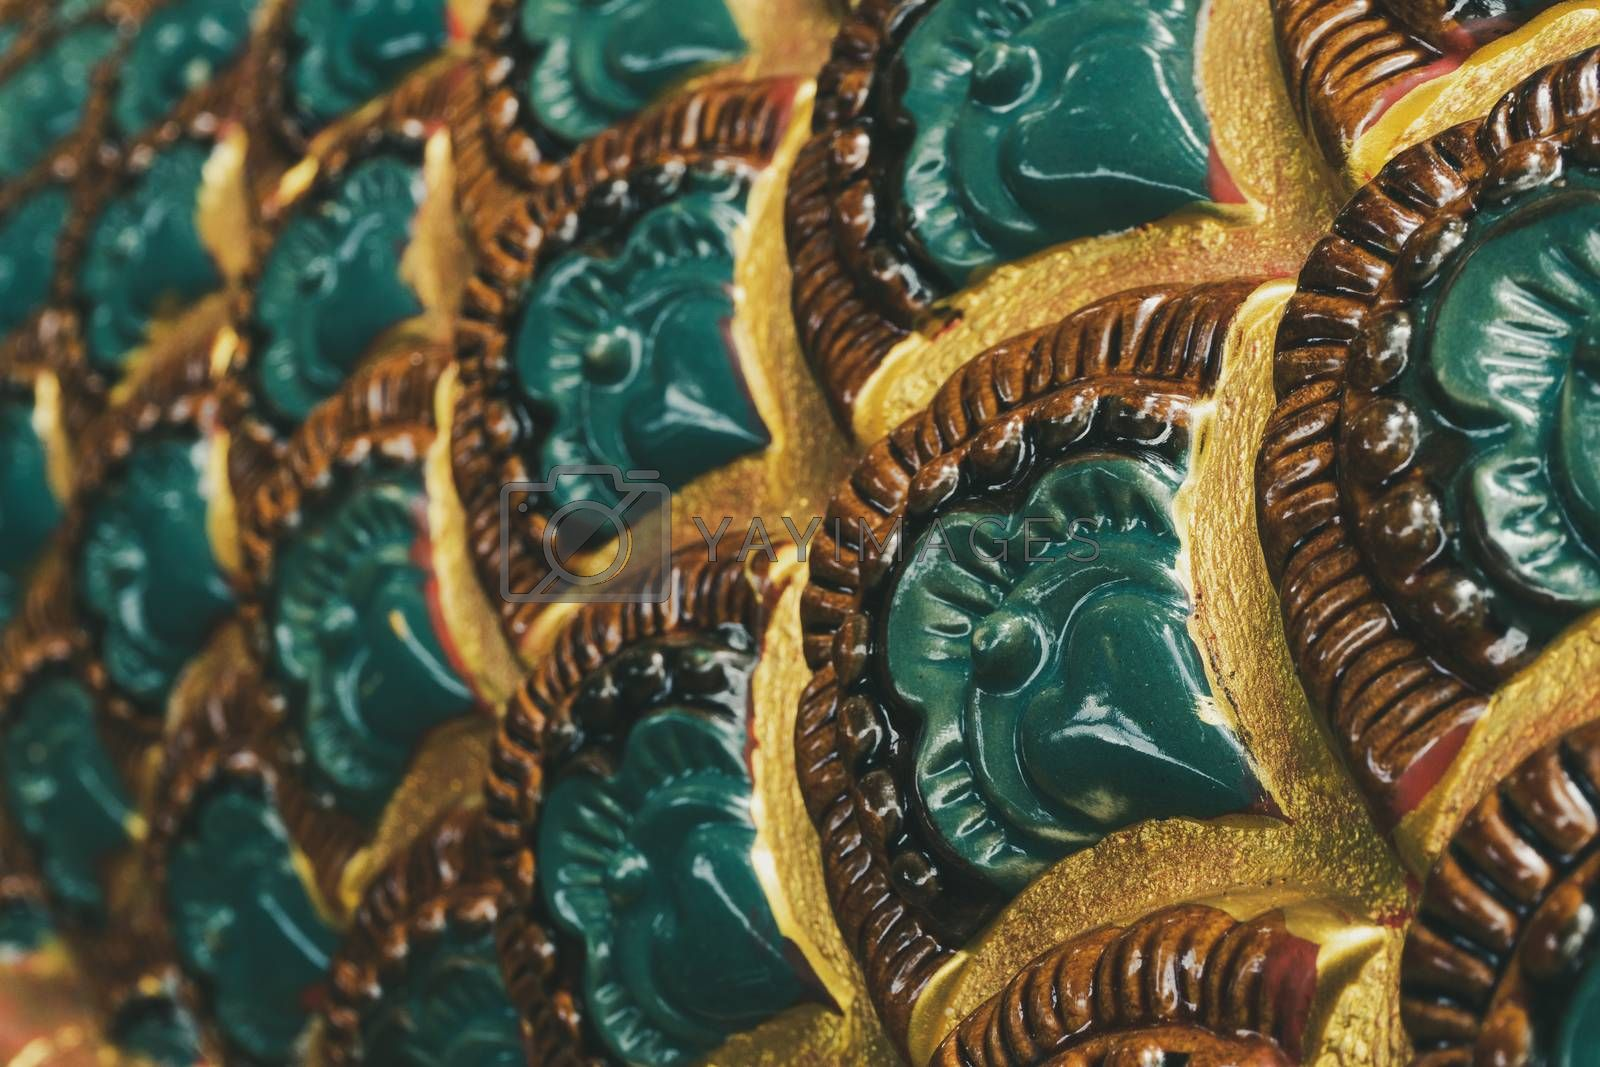 Sculpture pattern of the serpent in Thailand temple. Concept of Thai and Lao cultural beliefs and philanthropy.